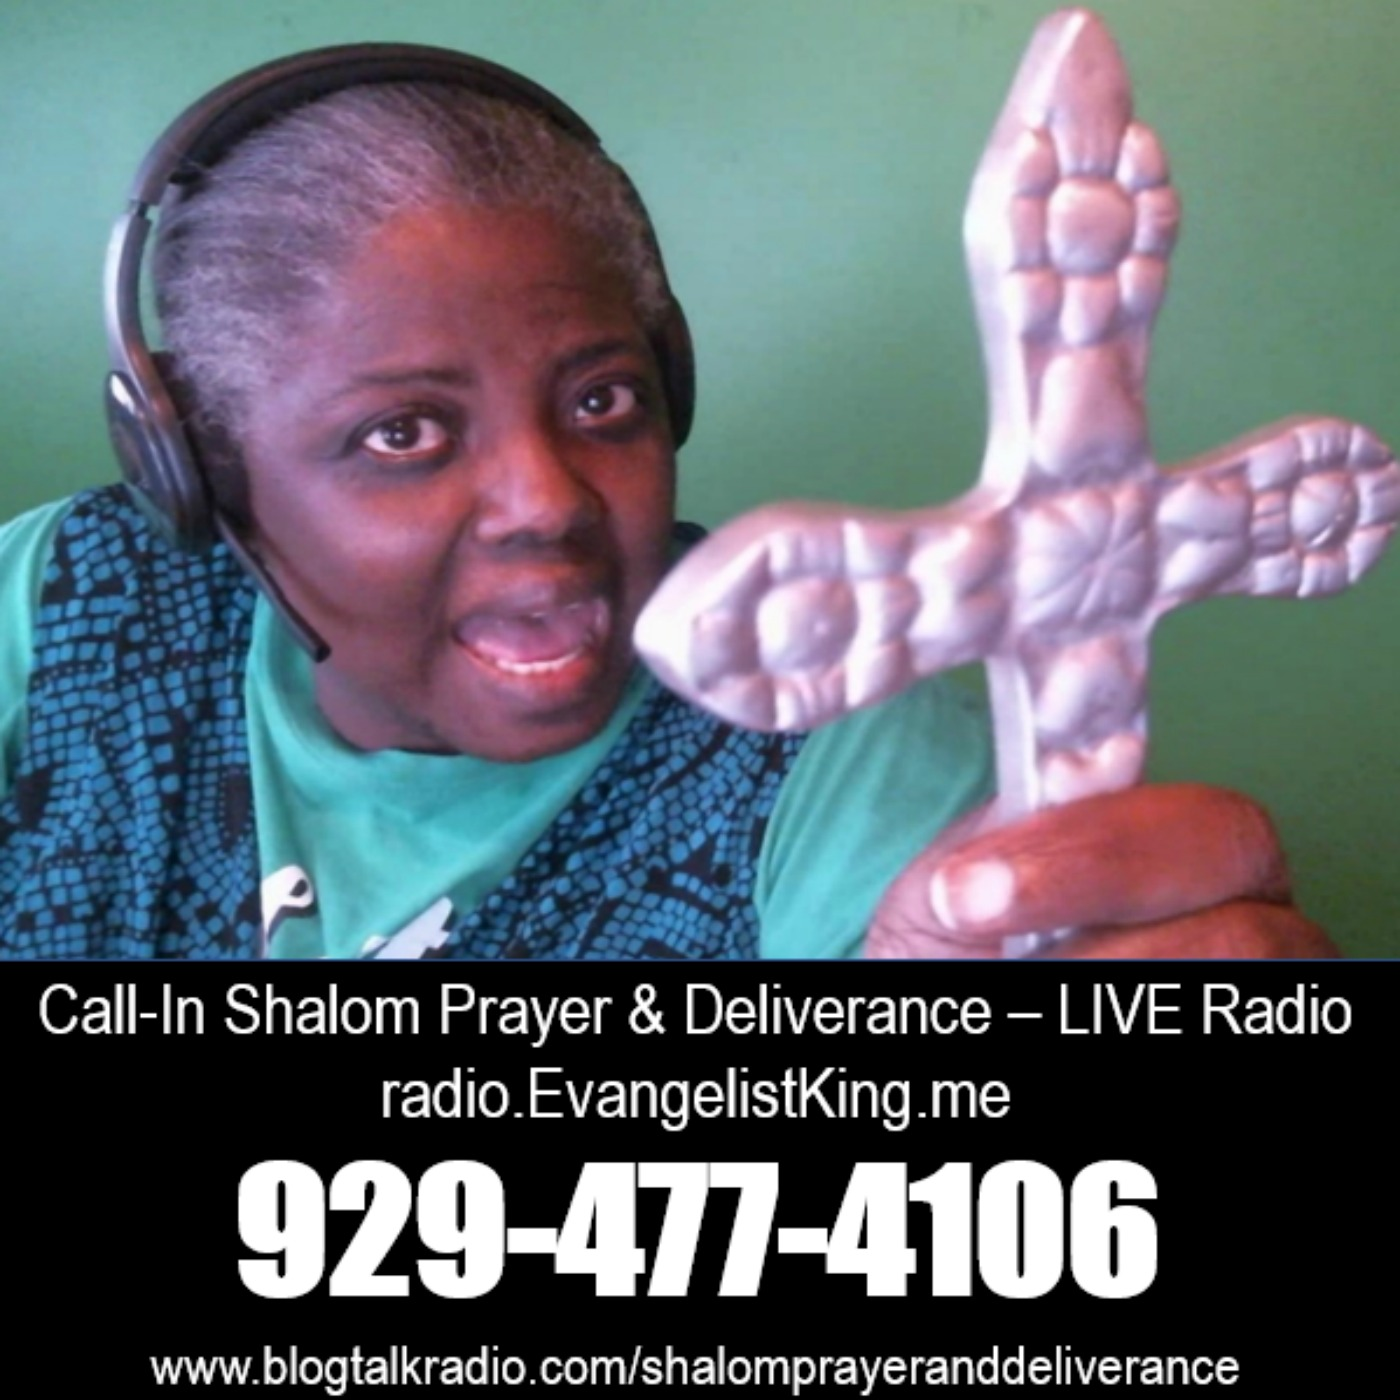 Call-In Shalom Prayer & Deliverance (New Program)